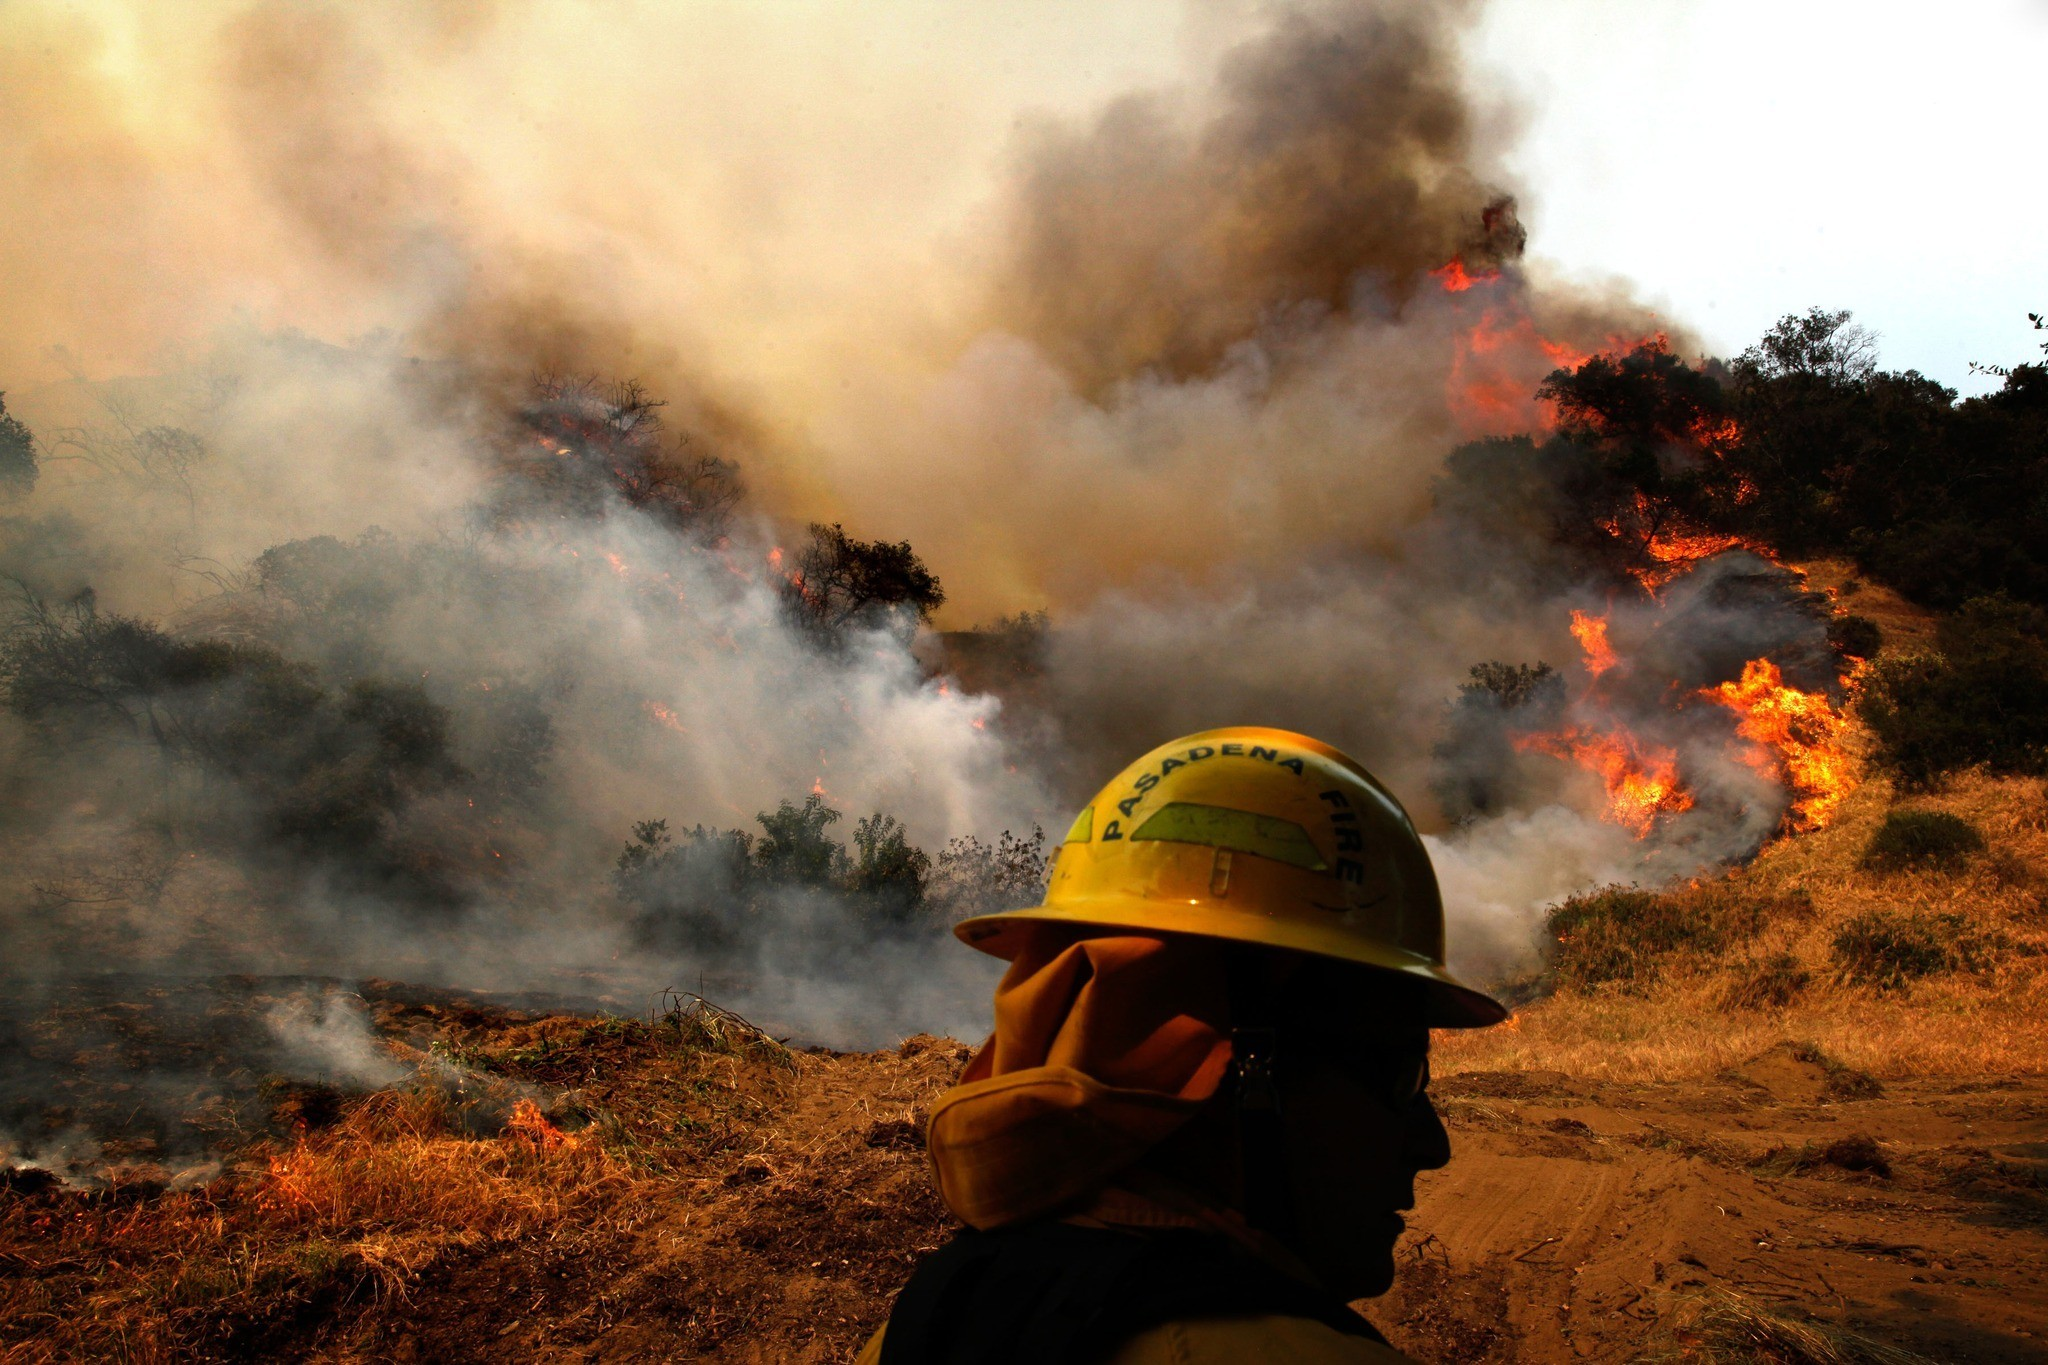 Fire in Monrovia - A firefighter looks over a raging fire